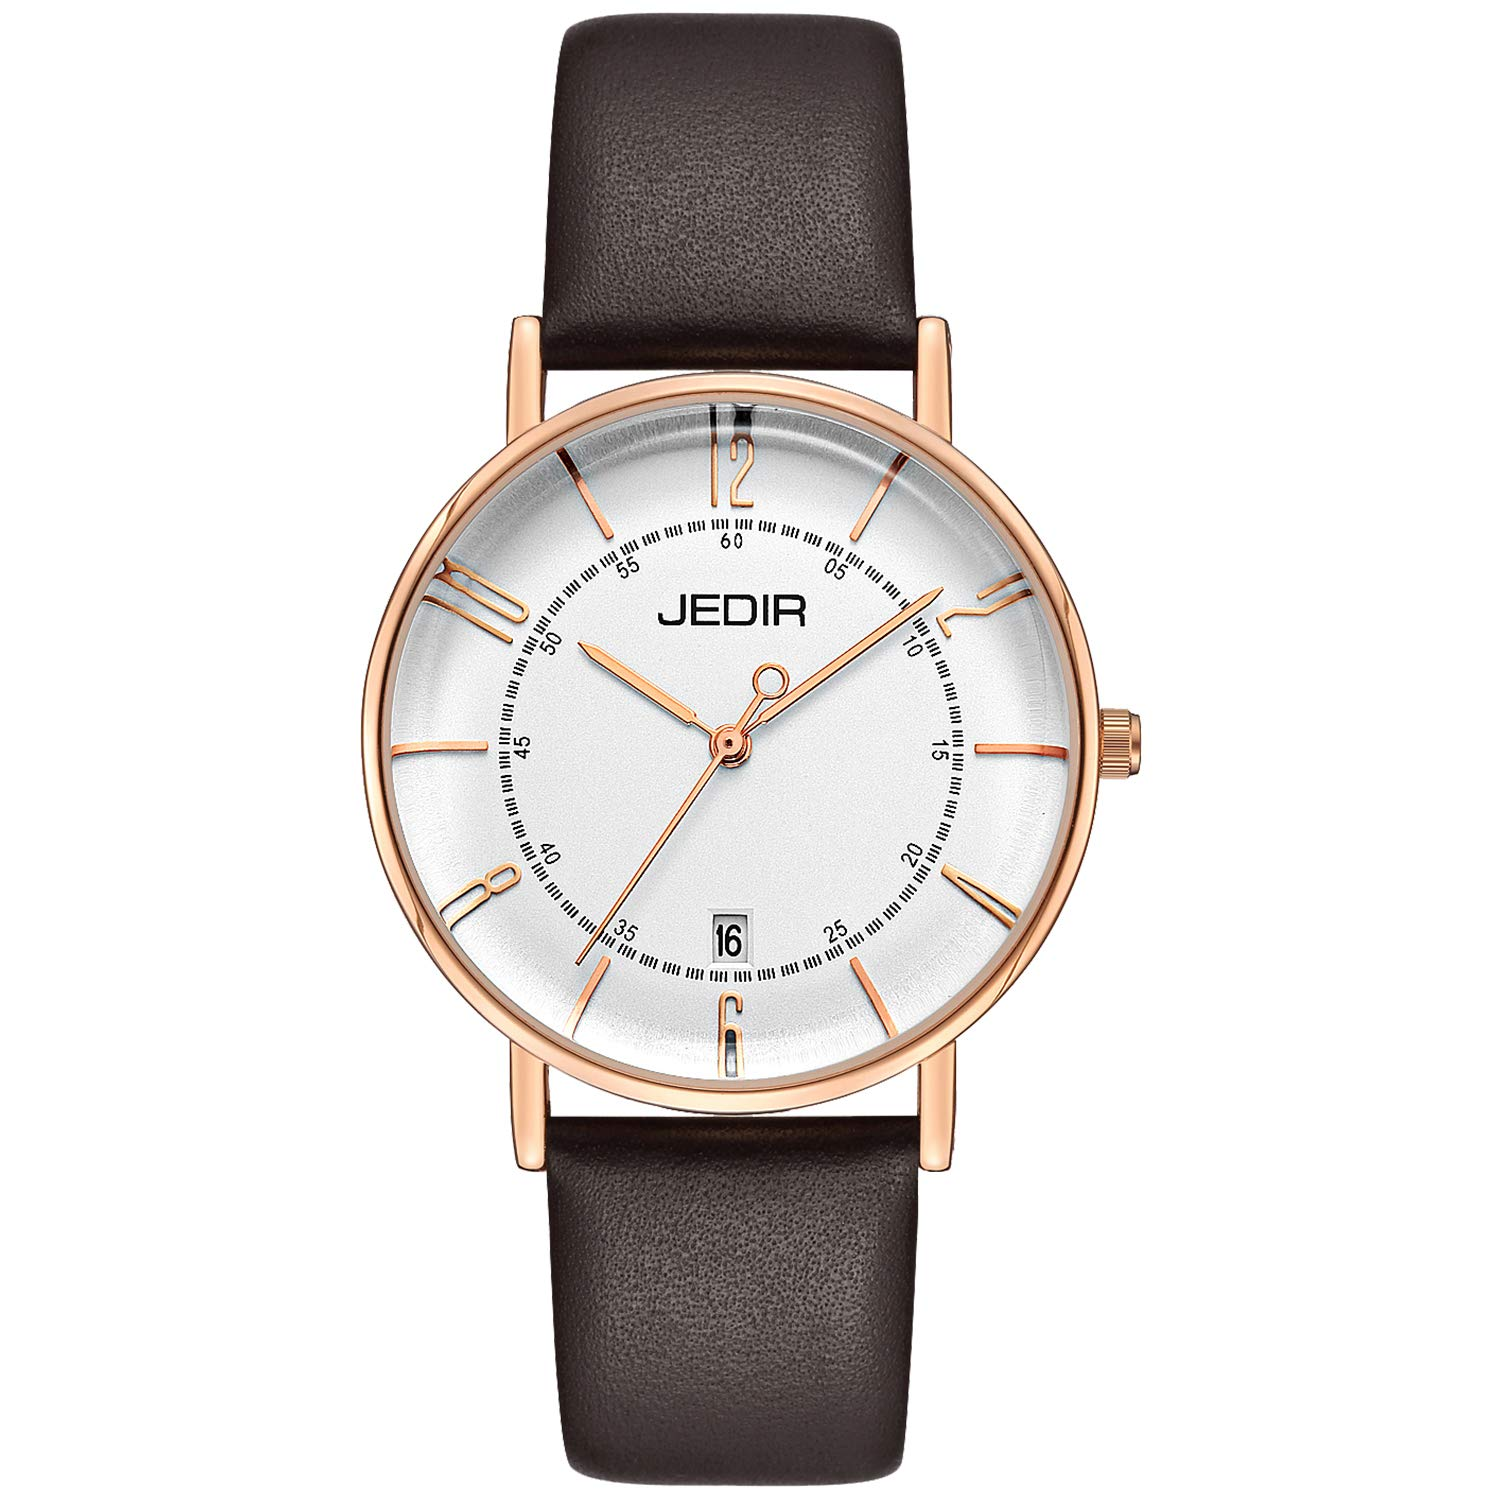 JEDIR Women's Watches Simple Thin Analog Quartz Watch Big Face Arabic Numbers Calendar Rose Gold Case Brown Leather Strap